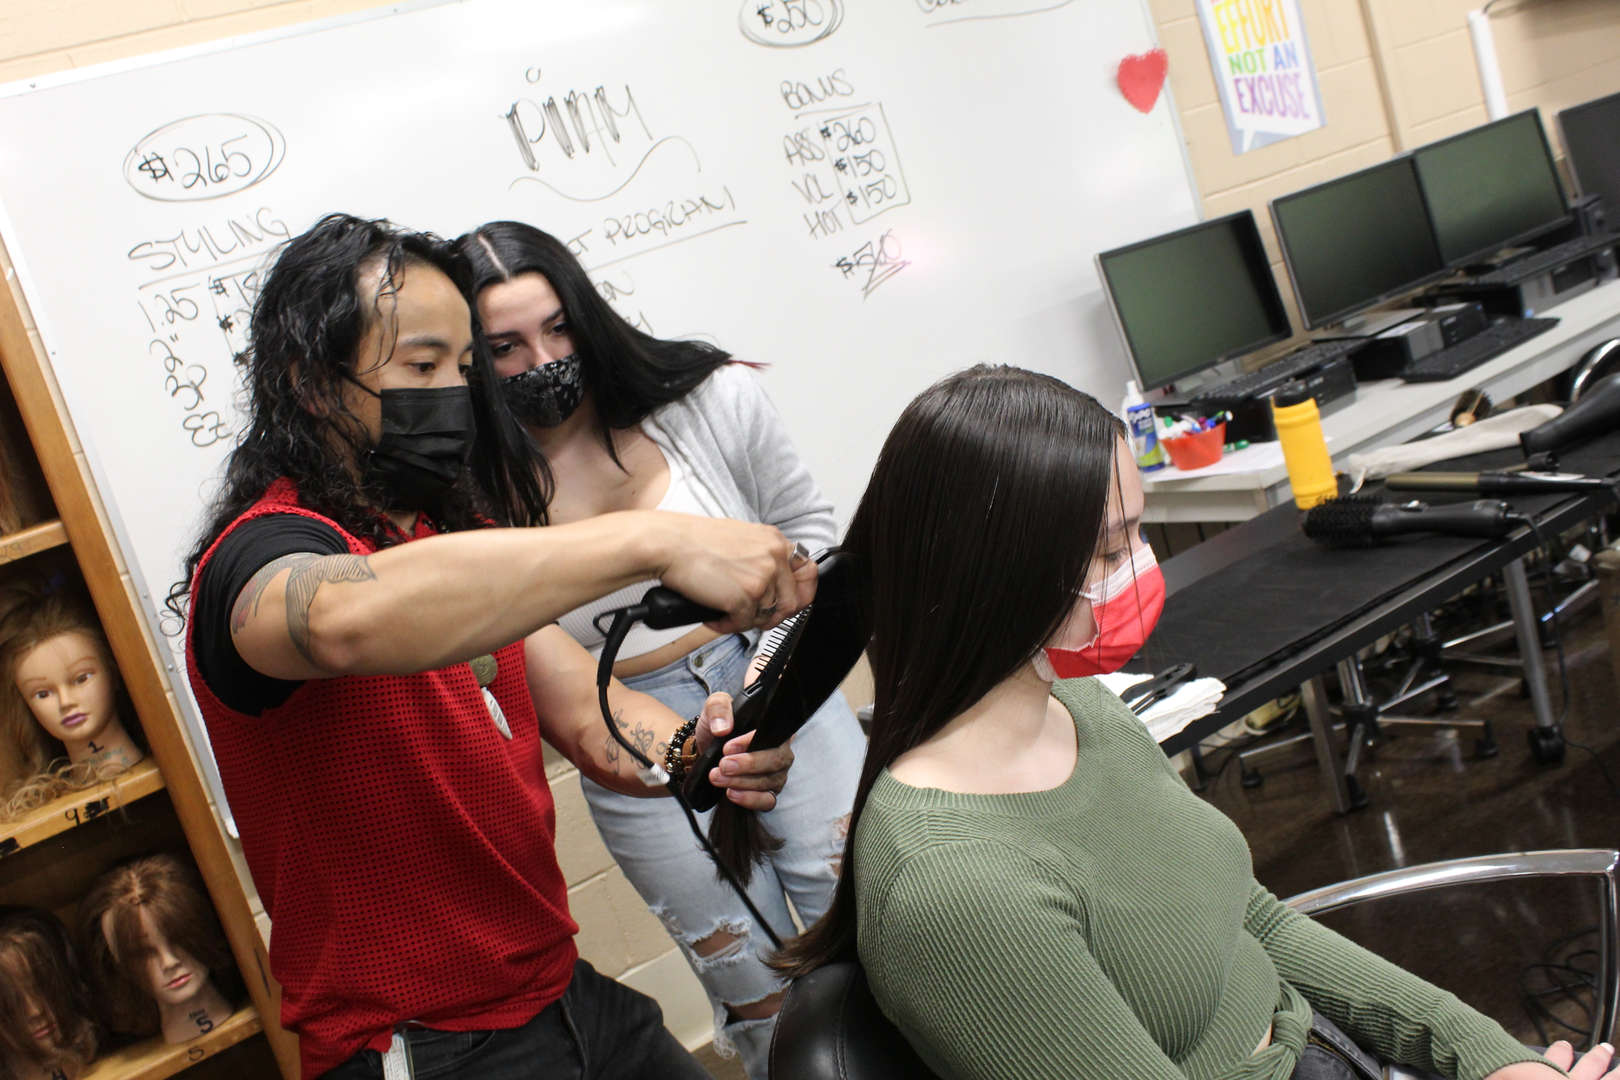 Man shows girl how to use a flatiron tool on another girl's hair